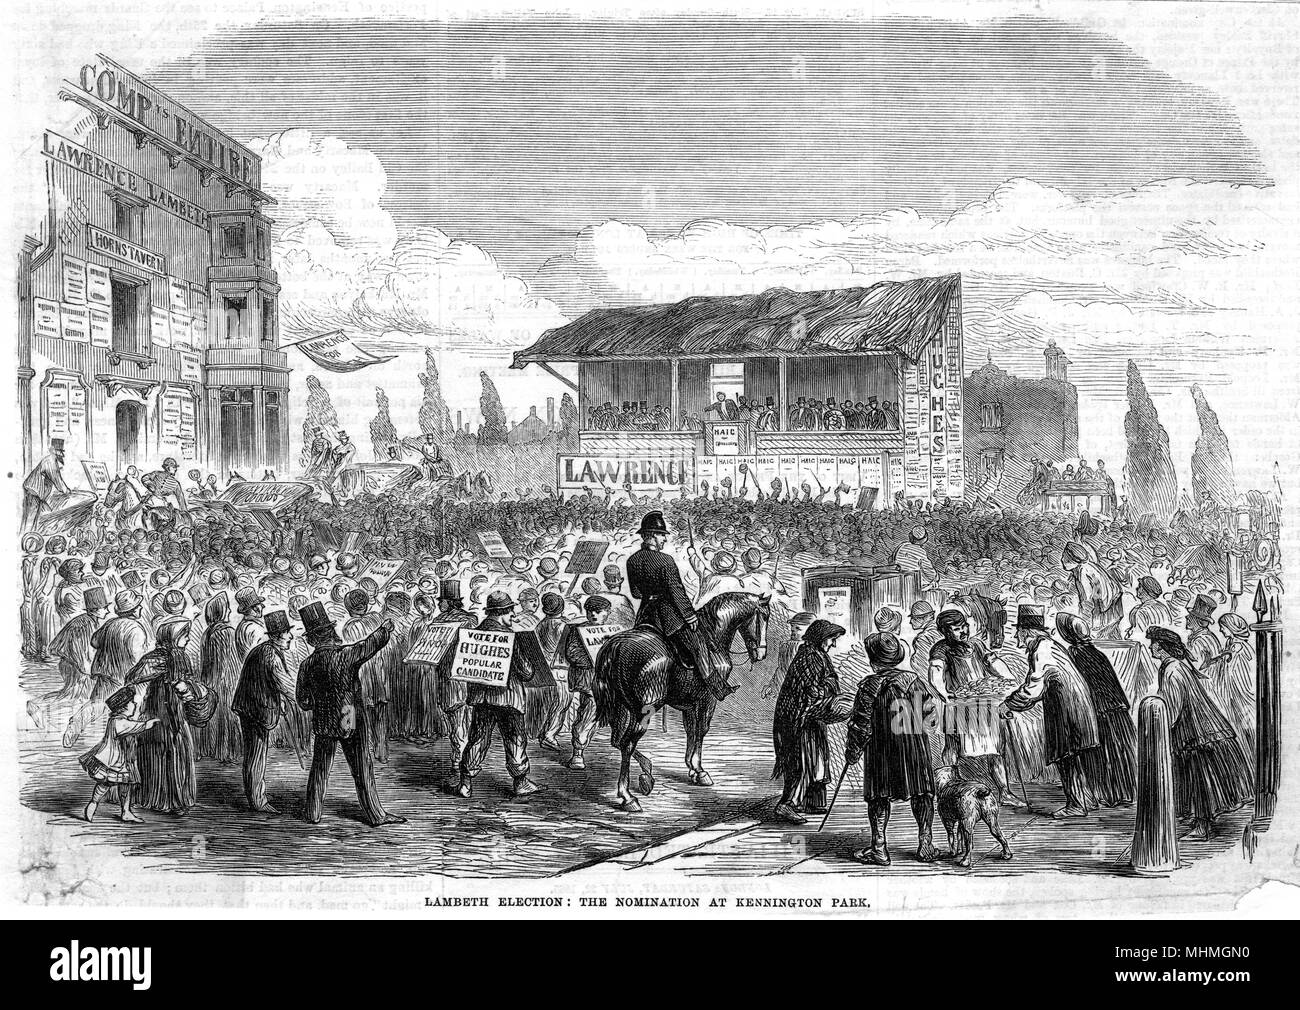 The Lambeth Election : The Nomination at Kennington Park.       Date: 1865 - Stock Image